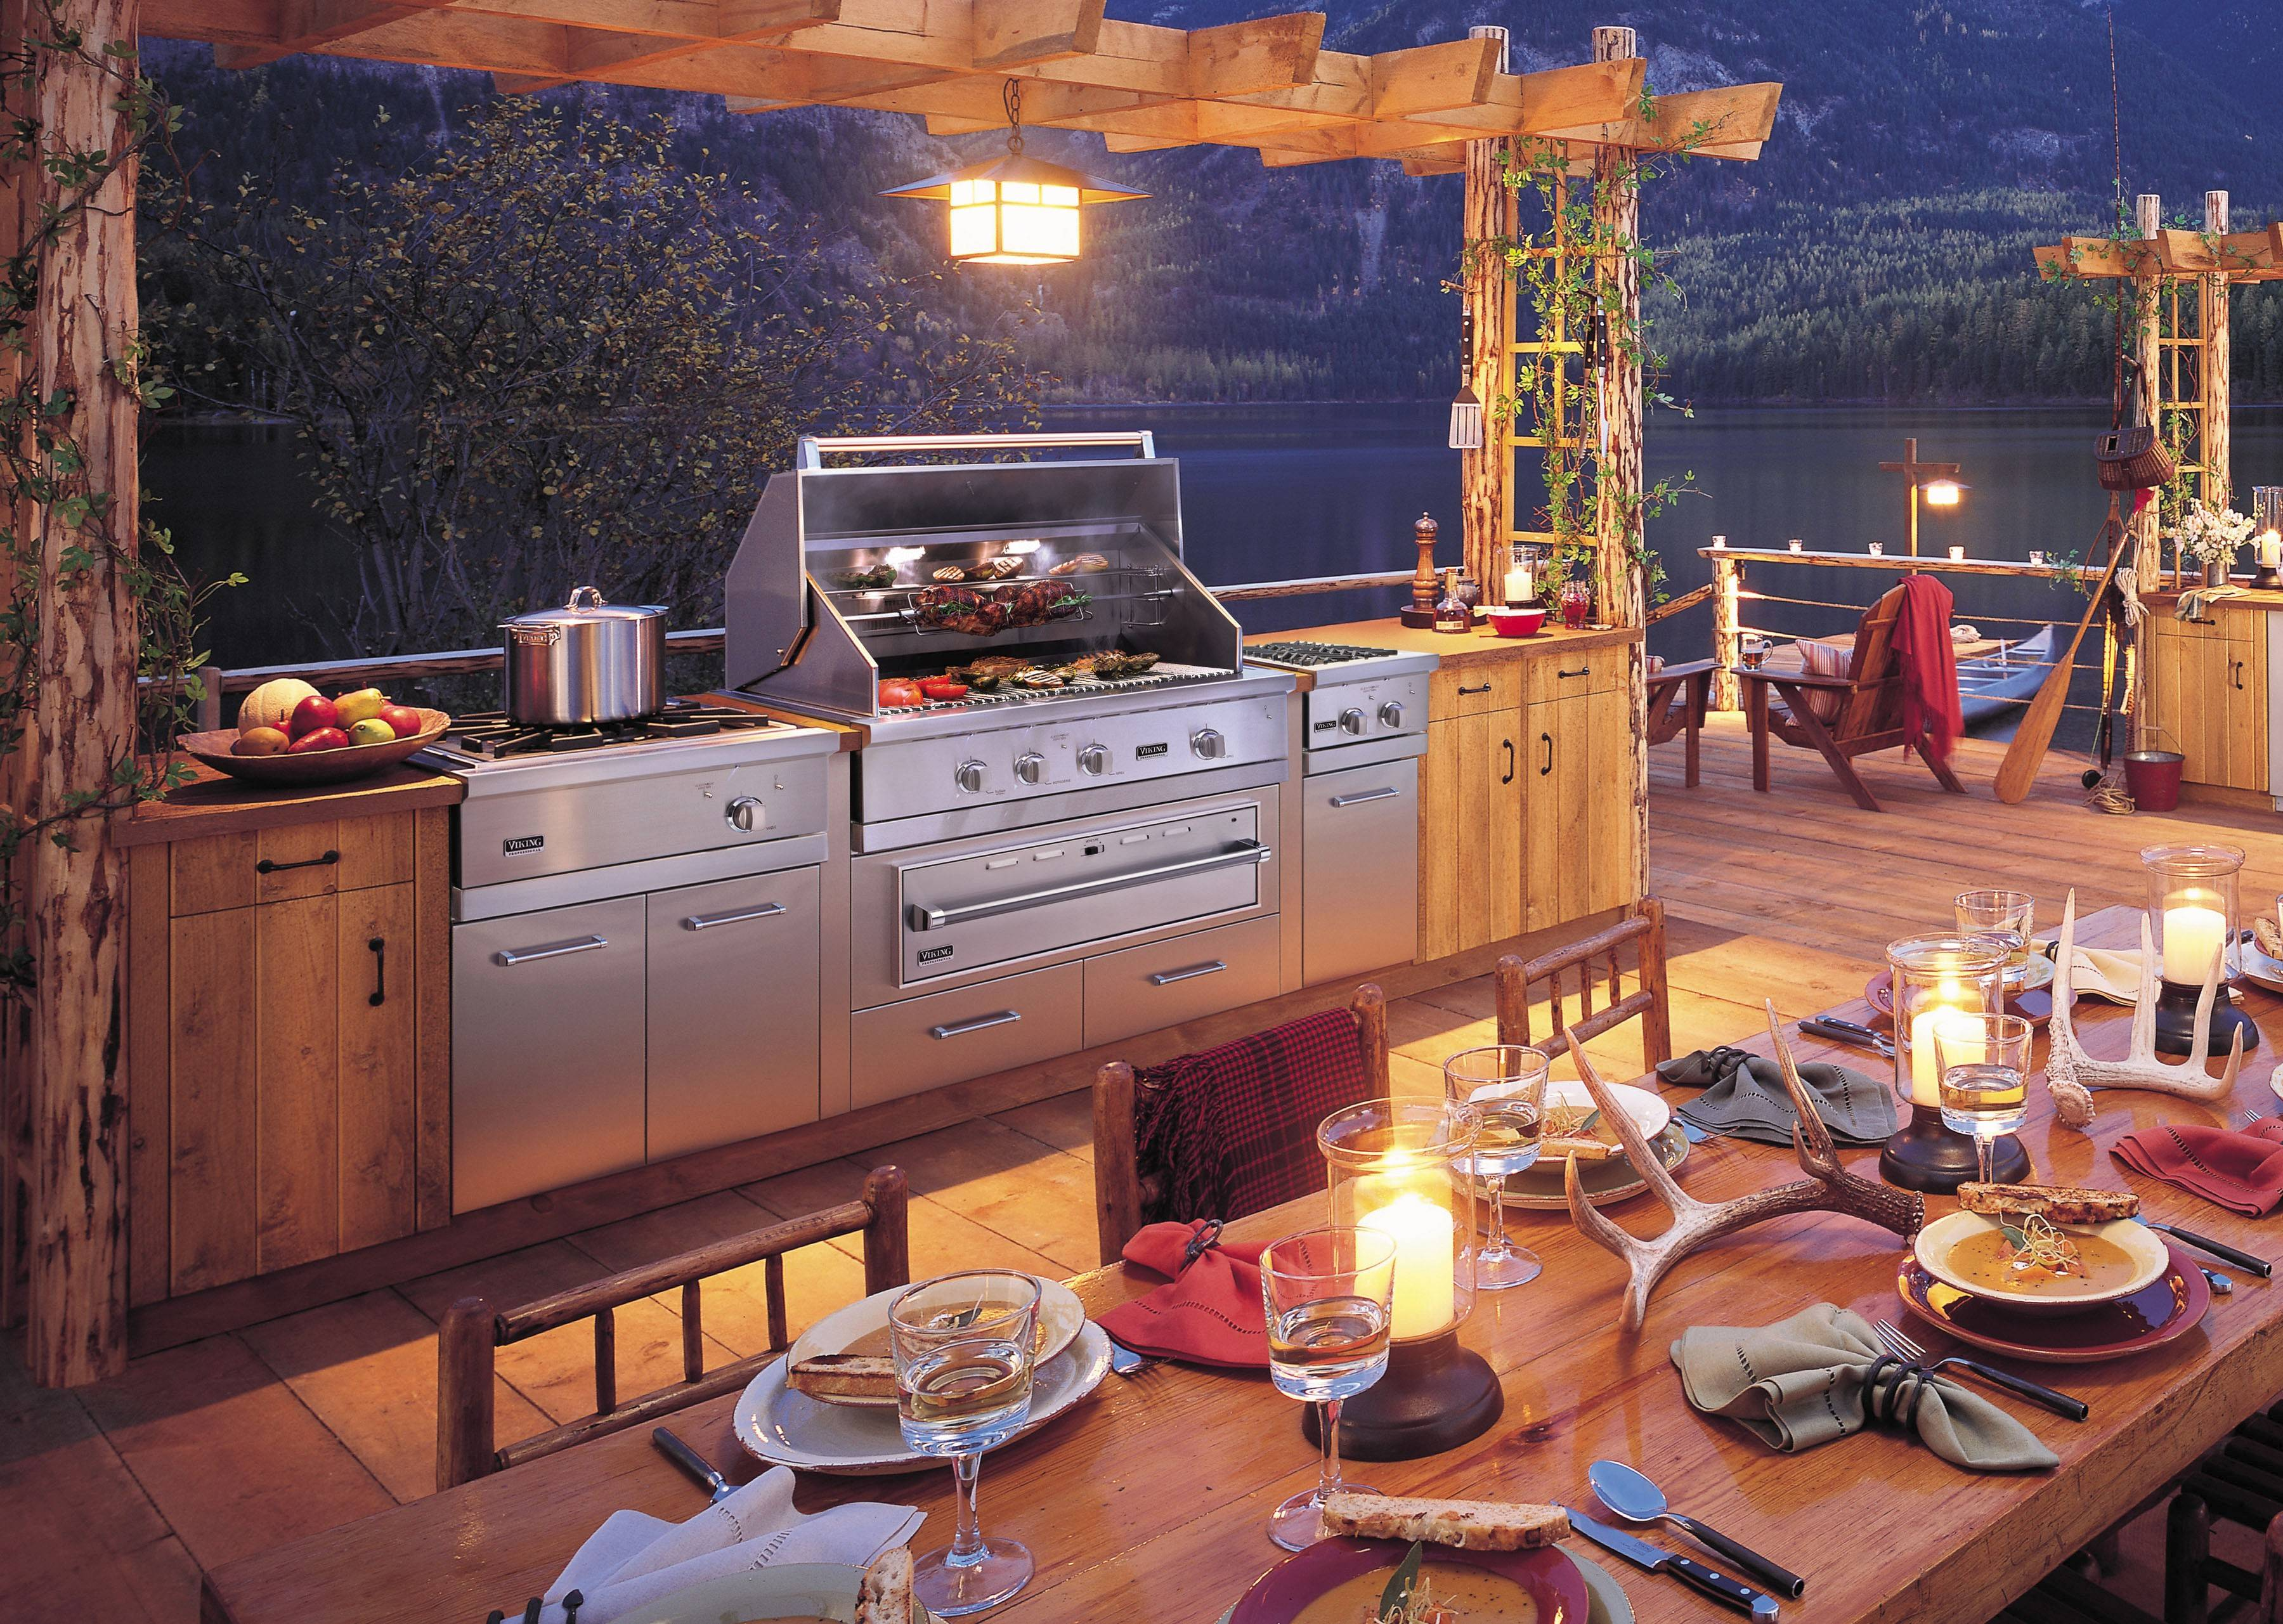 More bells, more whistles: New on the Viking Professional Outdoor 5 series grill are controls with LED lights for nighttime grilling. The units can stand alone or be built into a full outdoor kitchen.